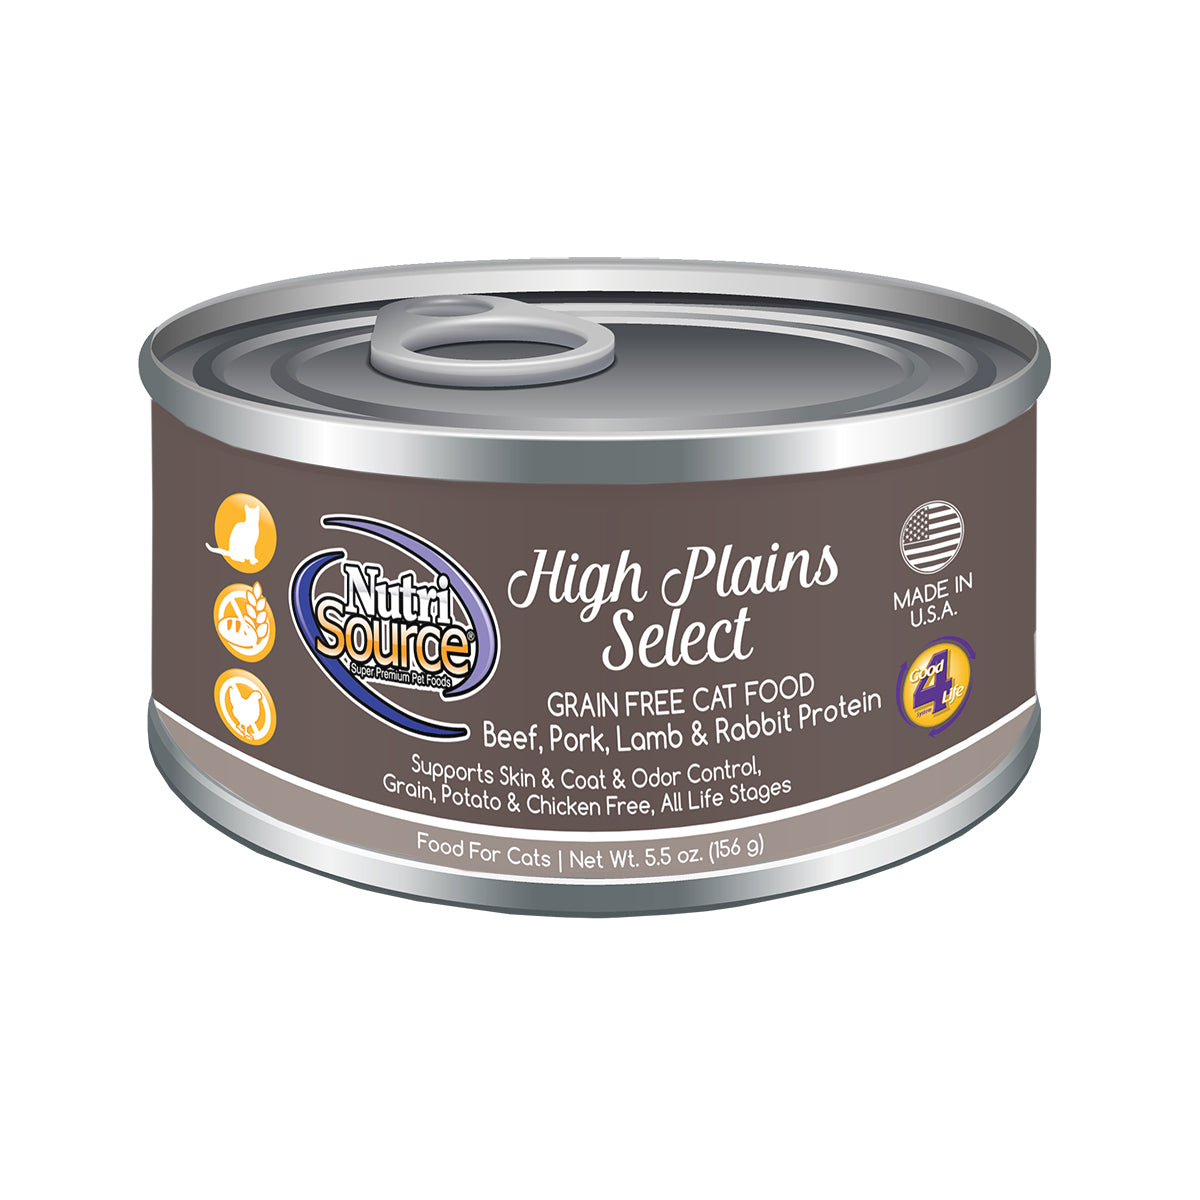 Nutrisource Grain Free High Plains Canned Wet Cat Food at NJPetSupply.com